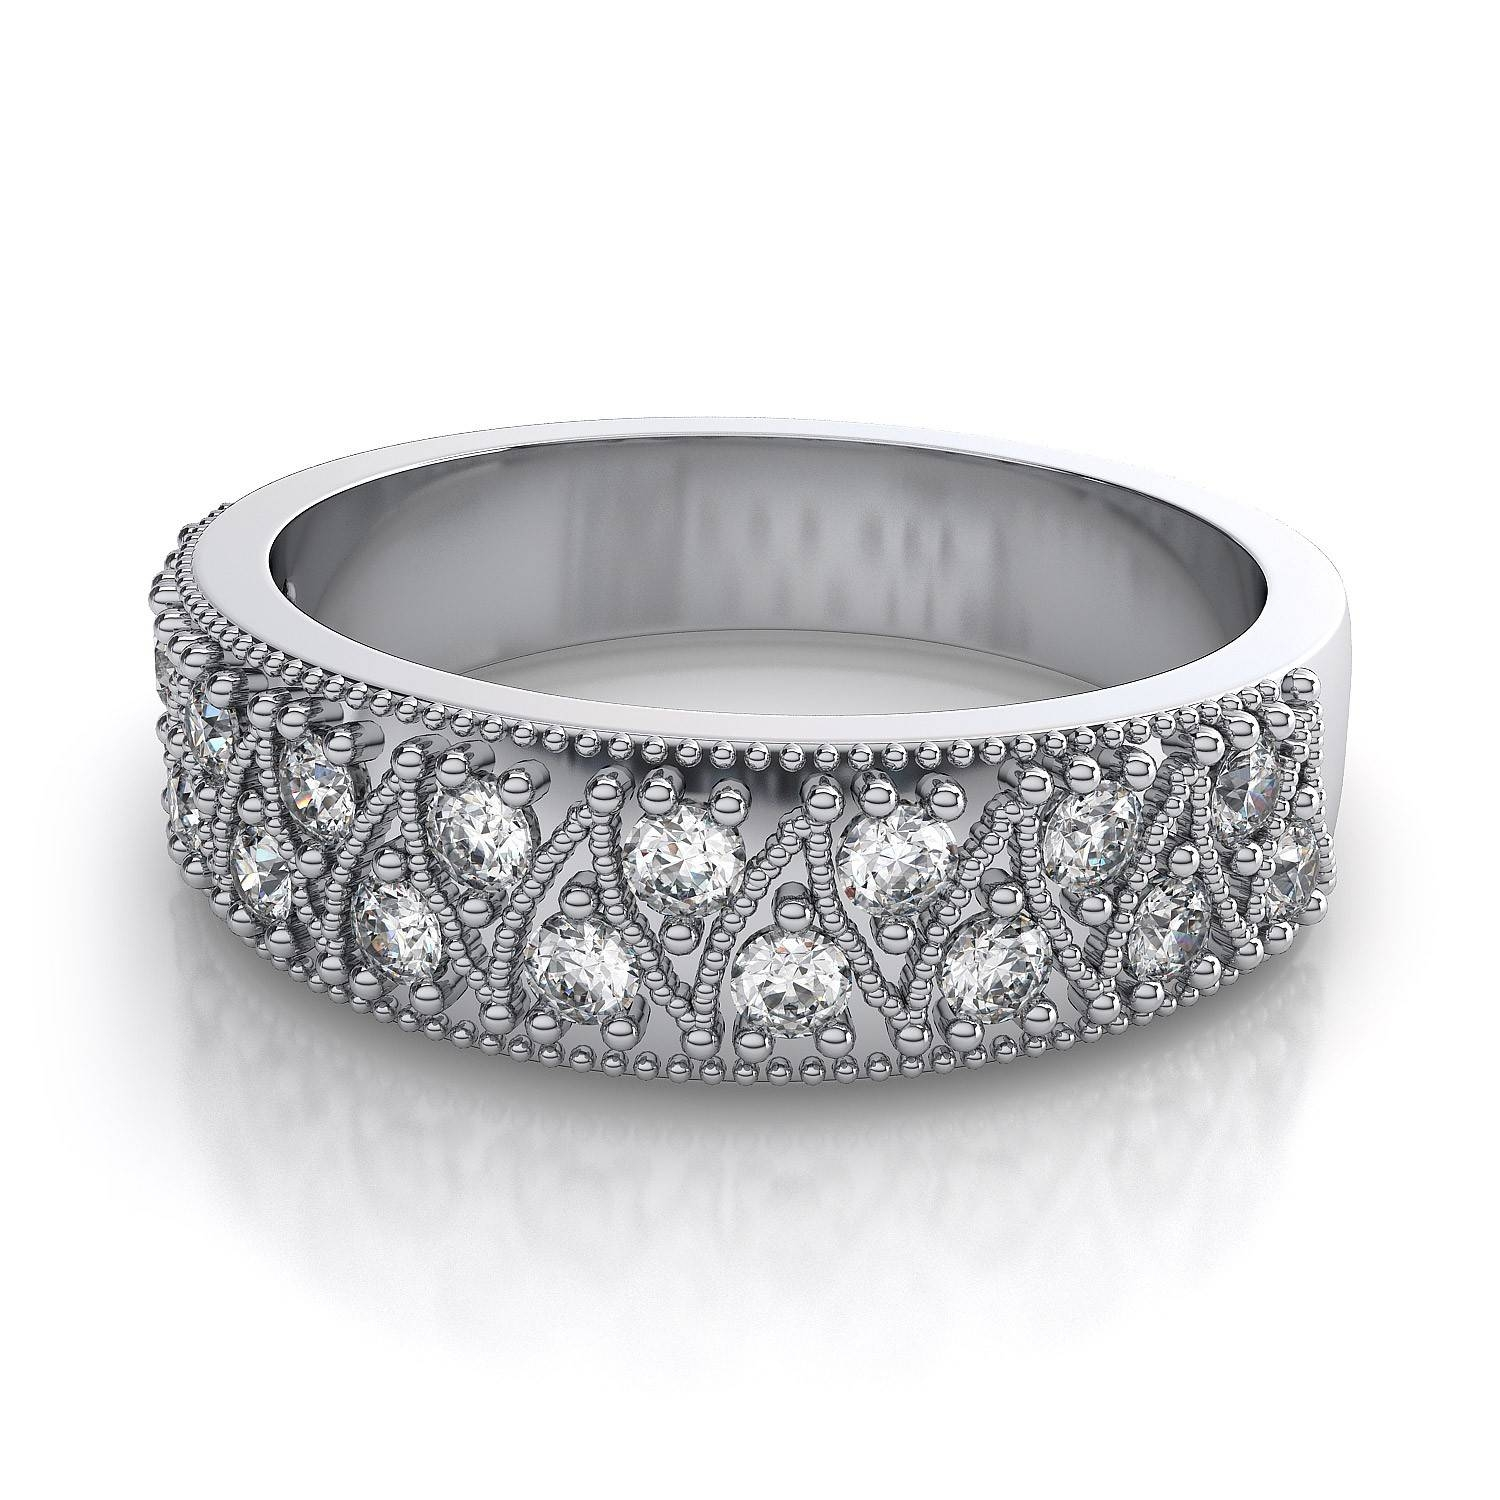 Uncategorized : Engaging Ring Wedding Bands To Match Solitaire Intended For Best And Newest Platinum Diamond Anniversary Rings (Gallery 20 of 25)